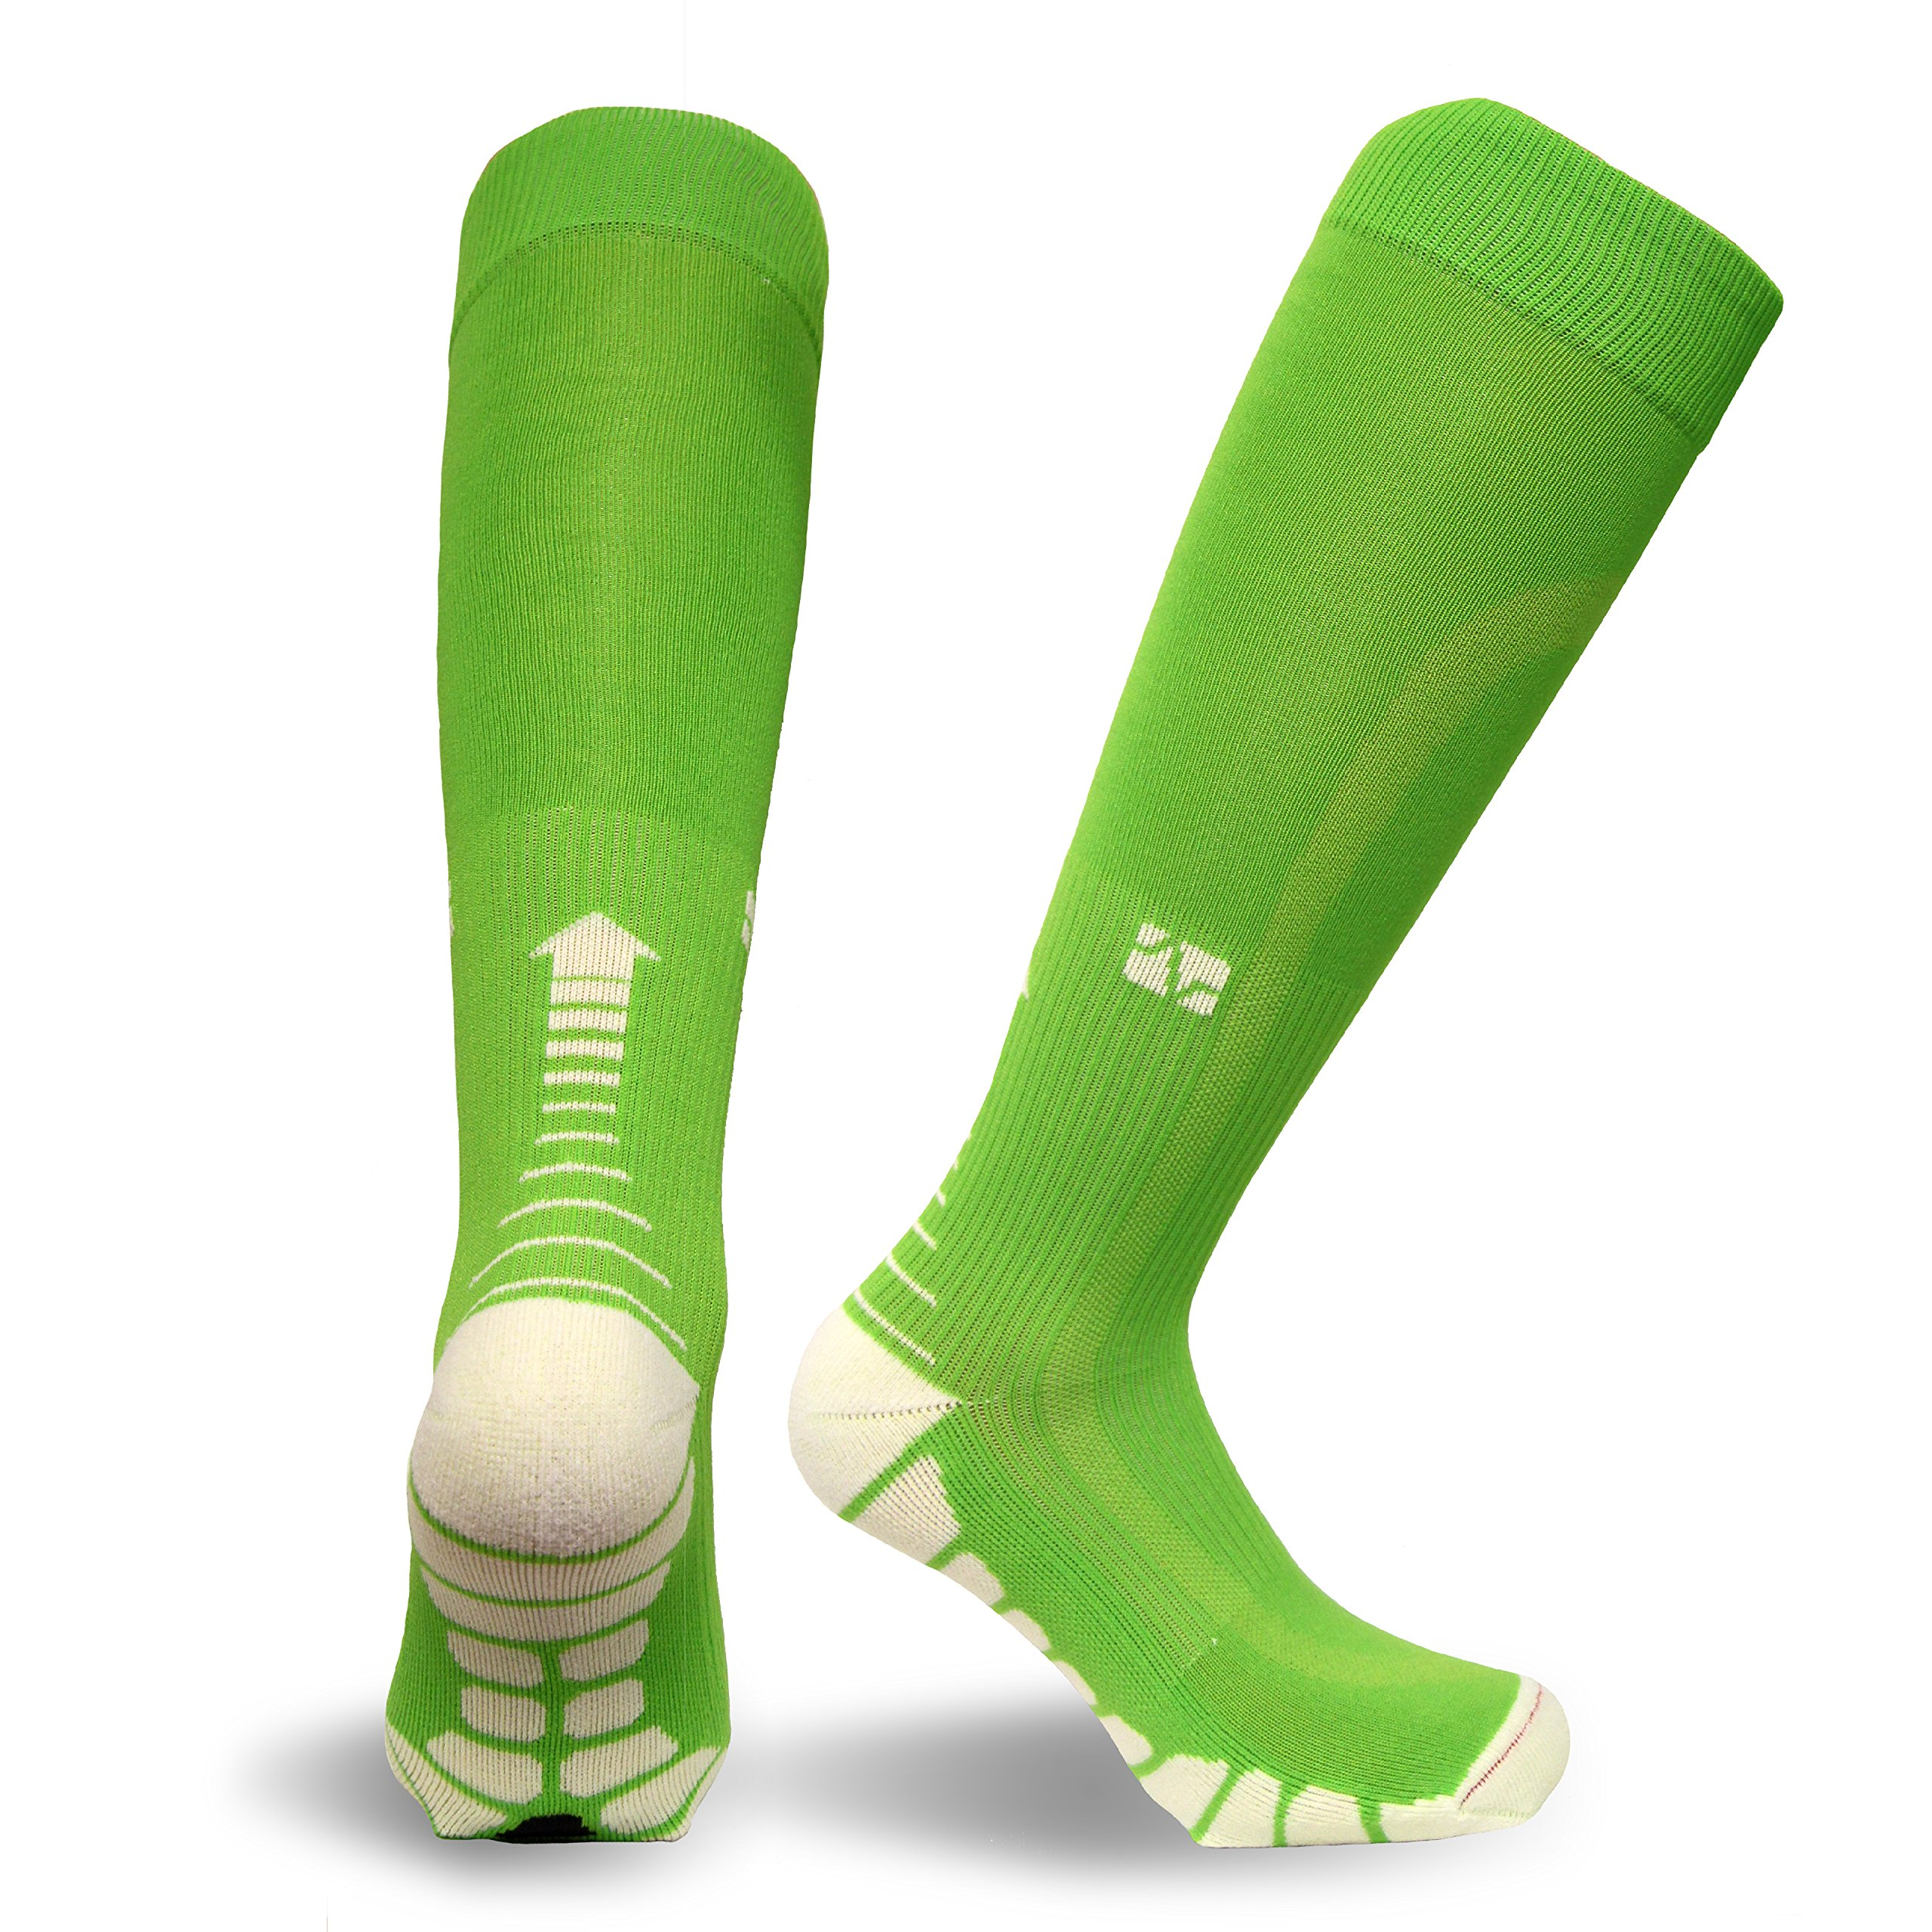 Vitalsox Italy-Patented Compression VT1211,X-Small,Lime Green by Vitalsox (Image #1)